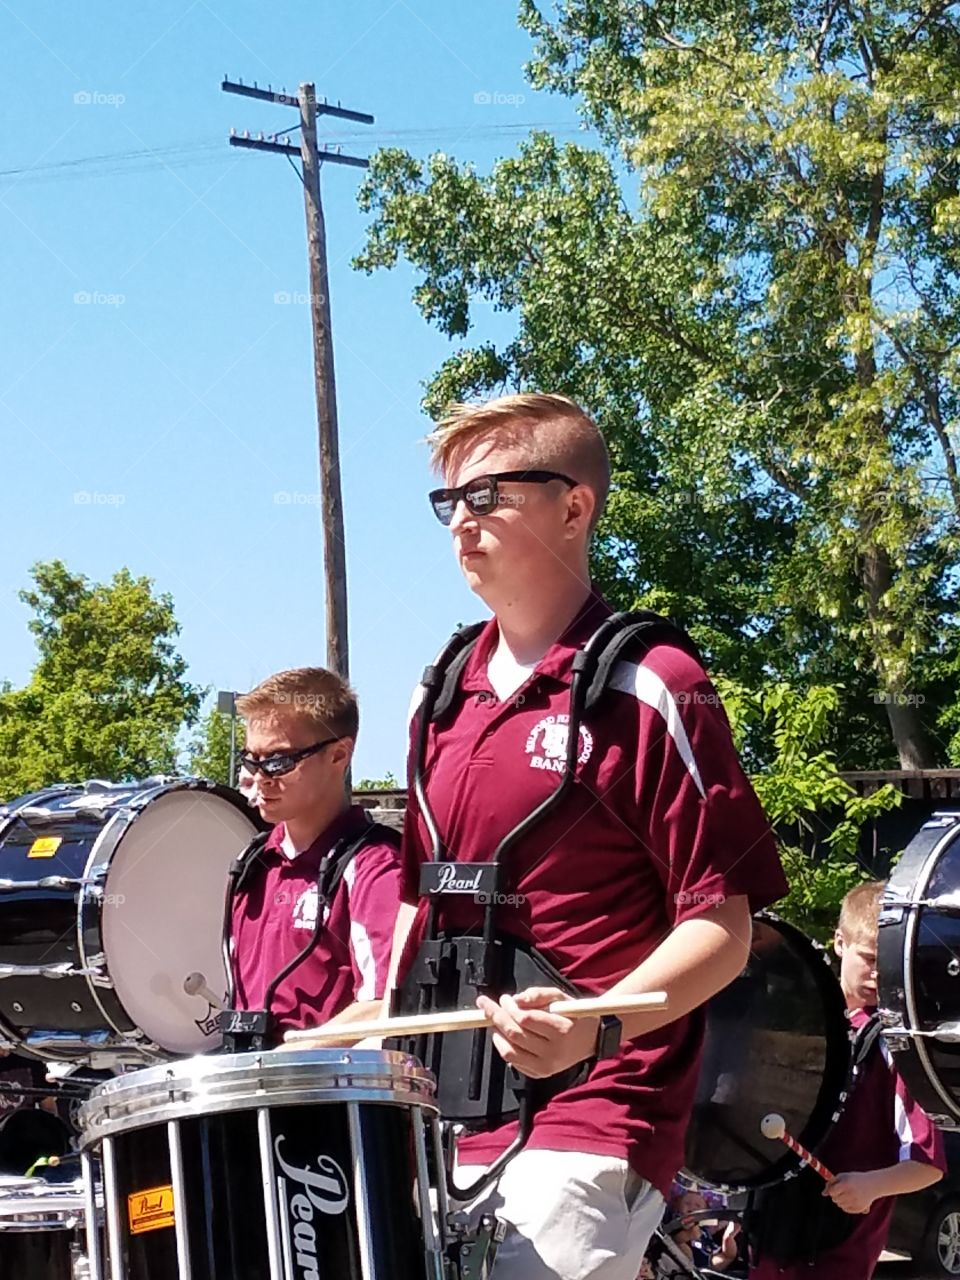 drummer in the marching band